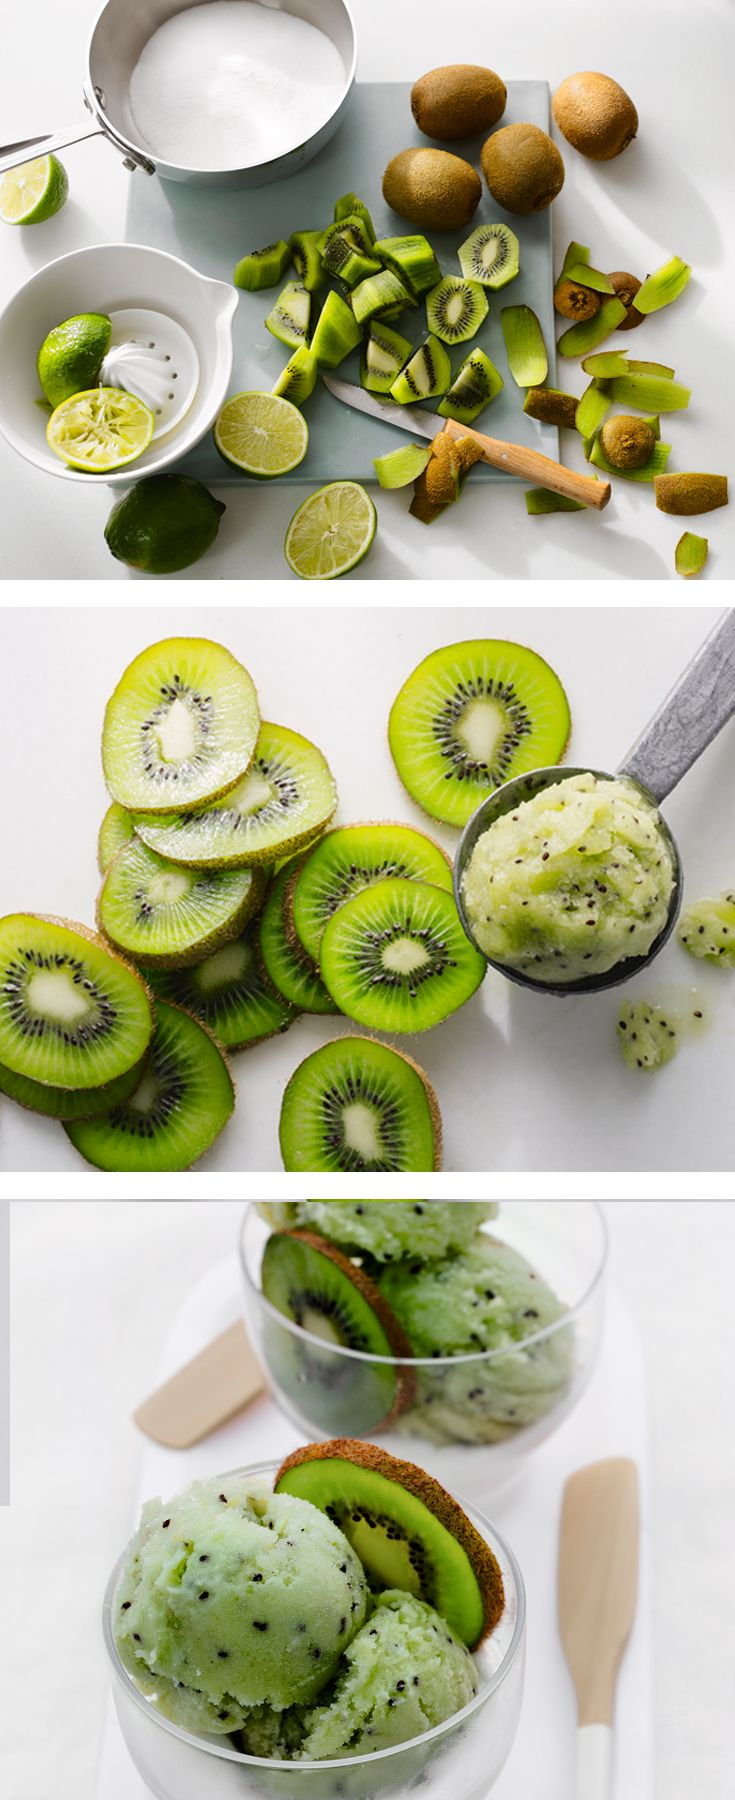 Who wants a bite of our cooling kiwi sorbet? Serve this delicious recipe with coconut yogurt and fresh kiwi slices for a fun dessert.